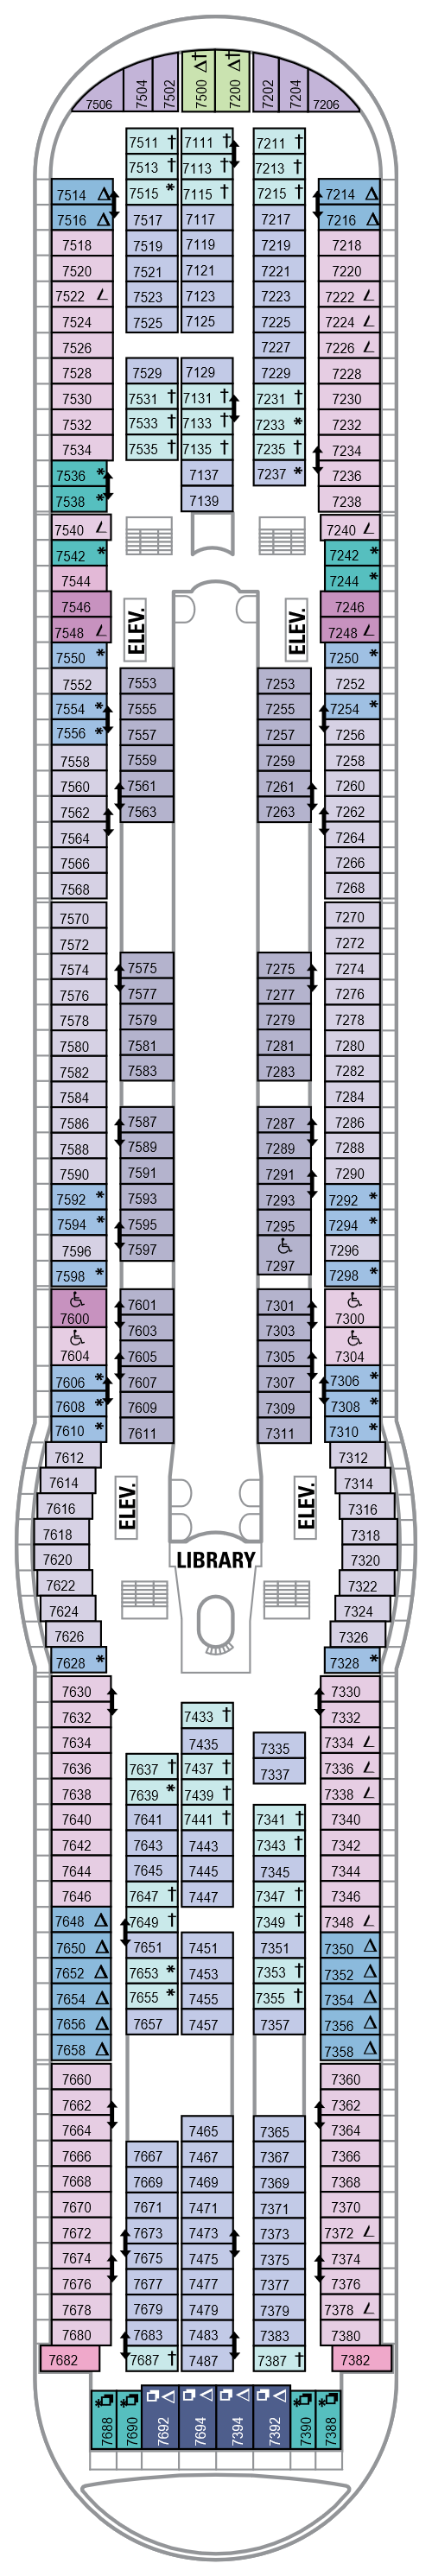 Explorer Of The Seas Deck 7 layout